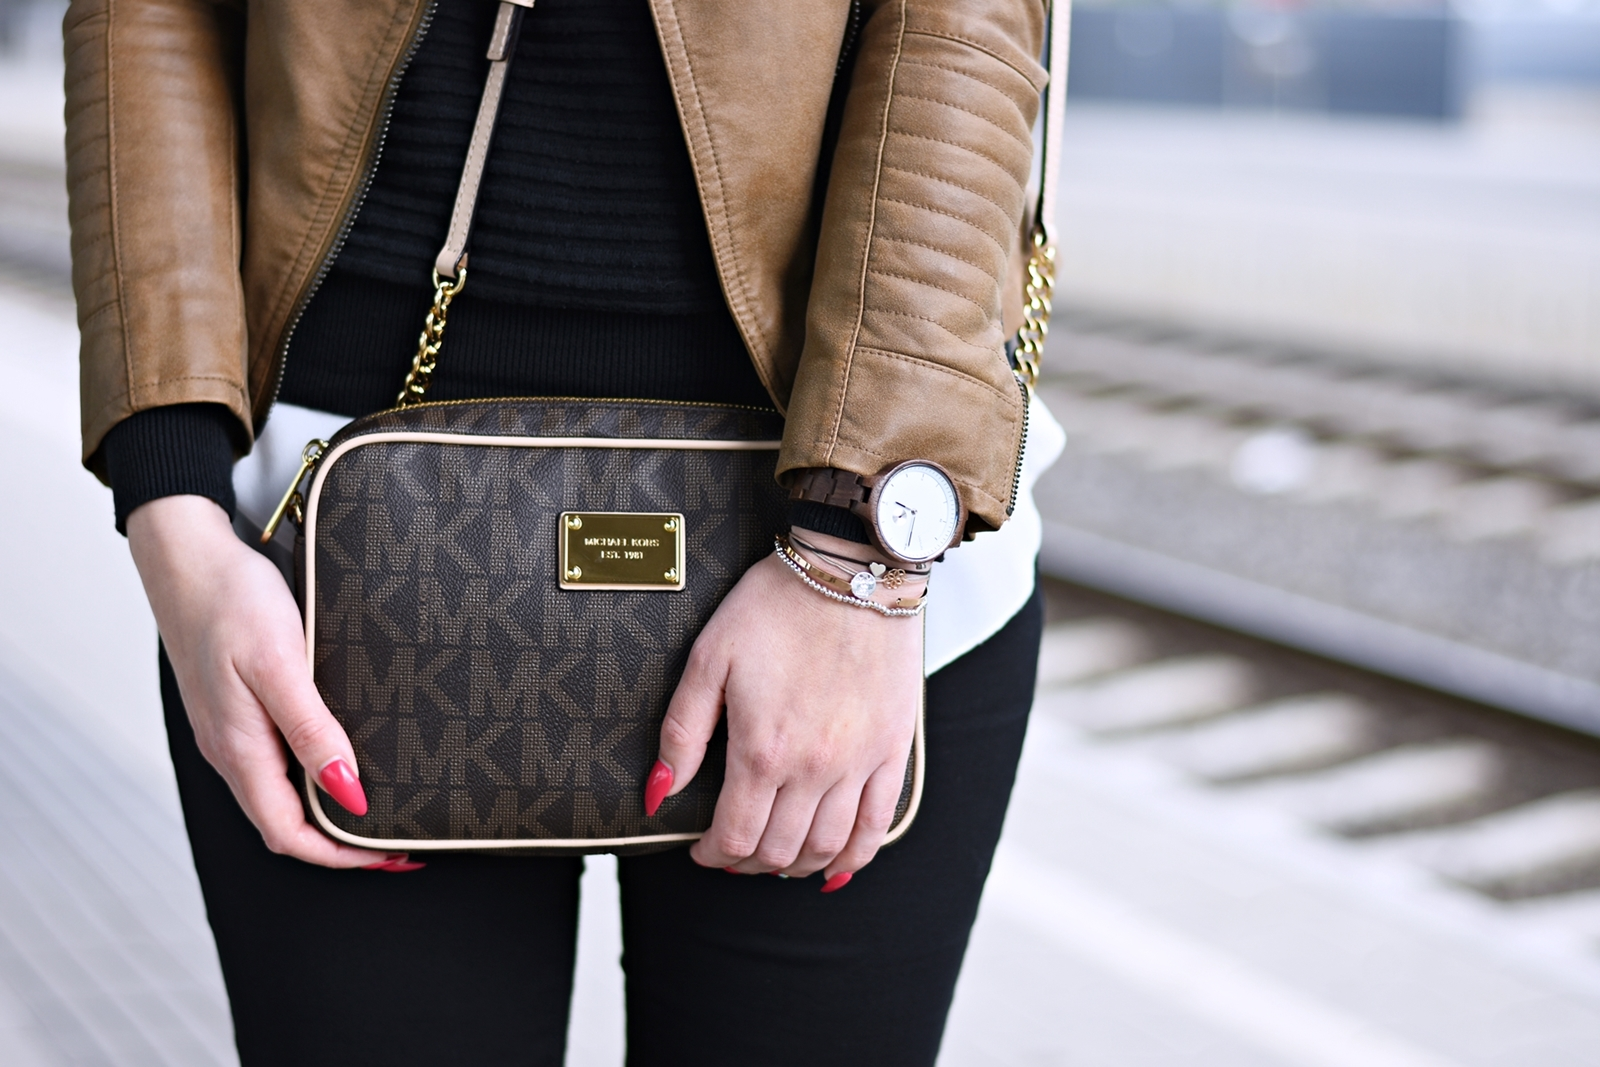 Outfit - Black and Brown - LIVEALIFE Holzuhr - Michael Kors Tasche - Fashionladyloves